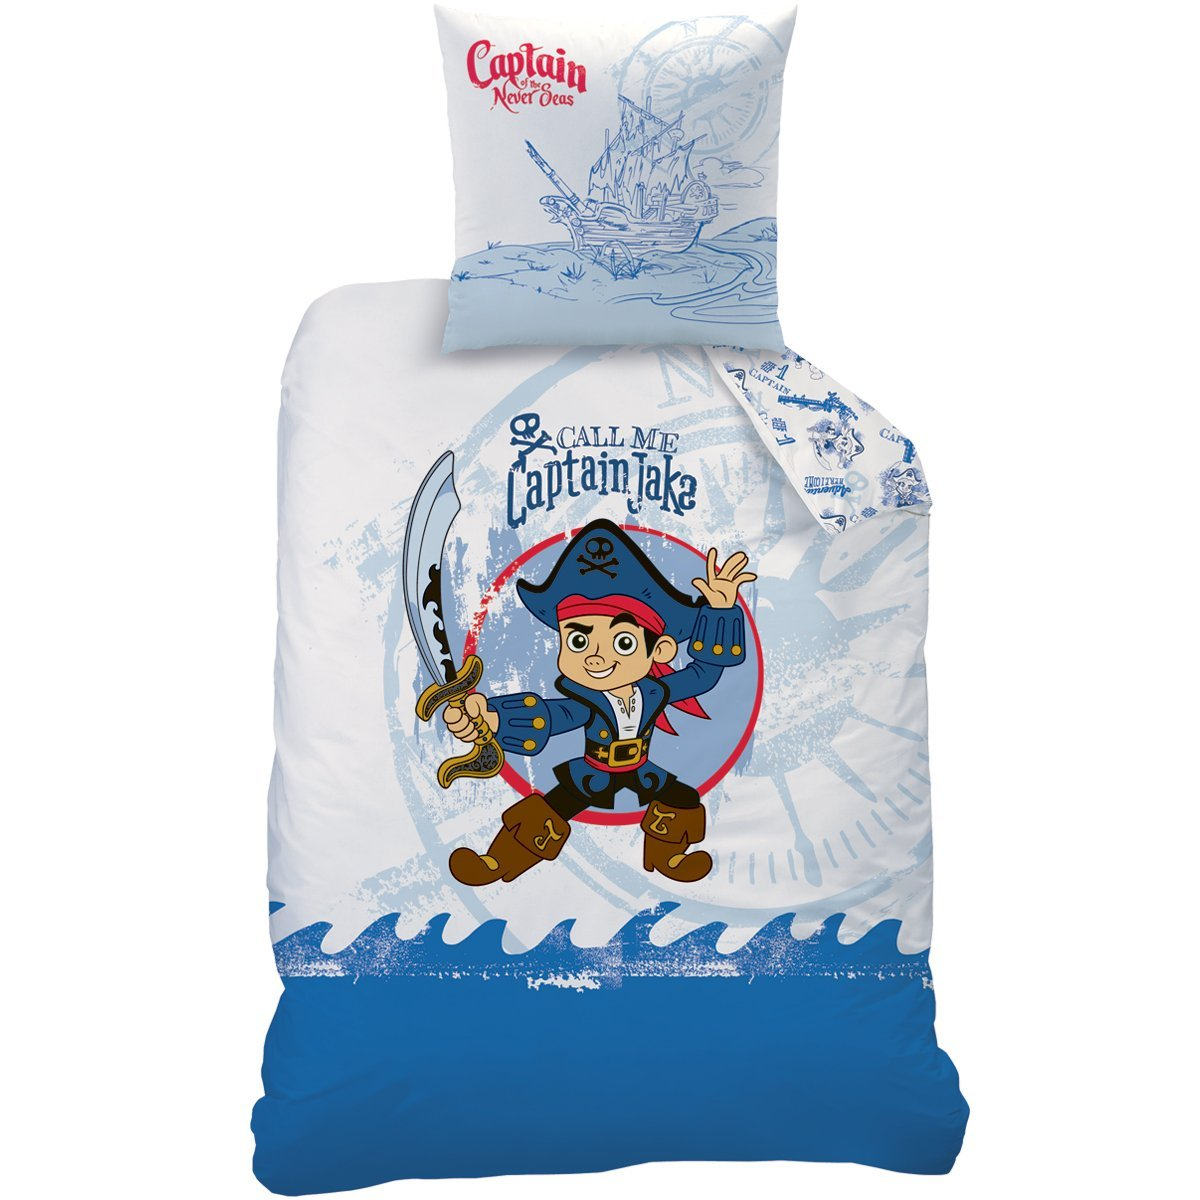 Pirate jake parure de lit housse de couette 140 x 200 cm captain jake le pirate - Housse de couette pirate ...